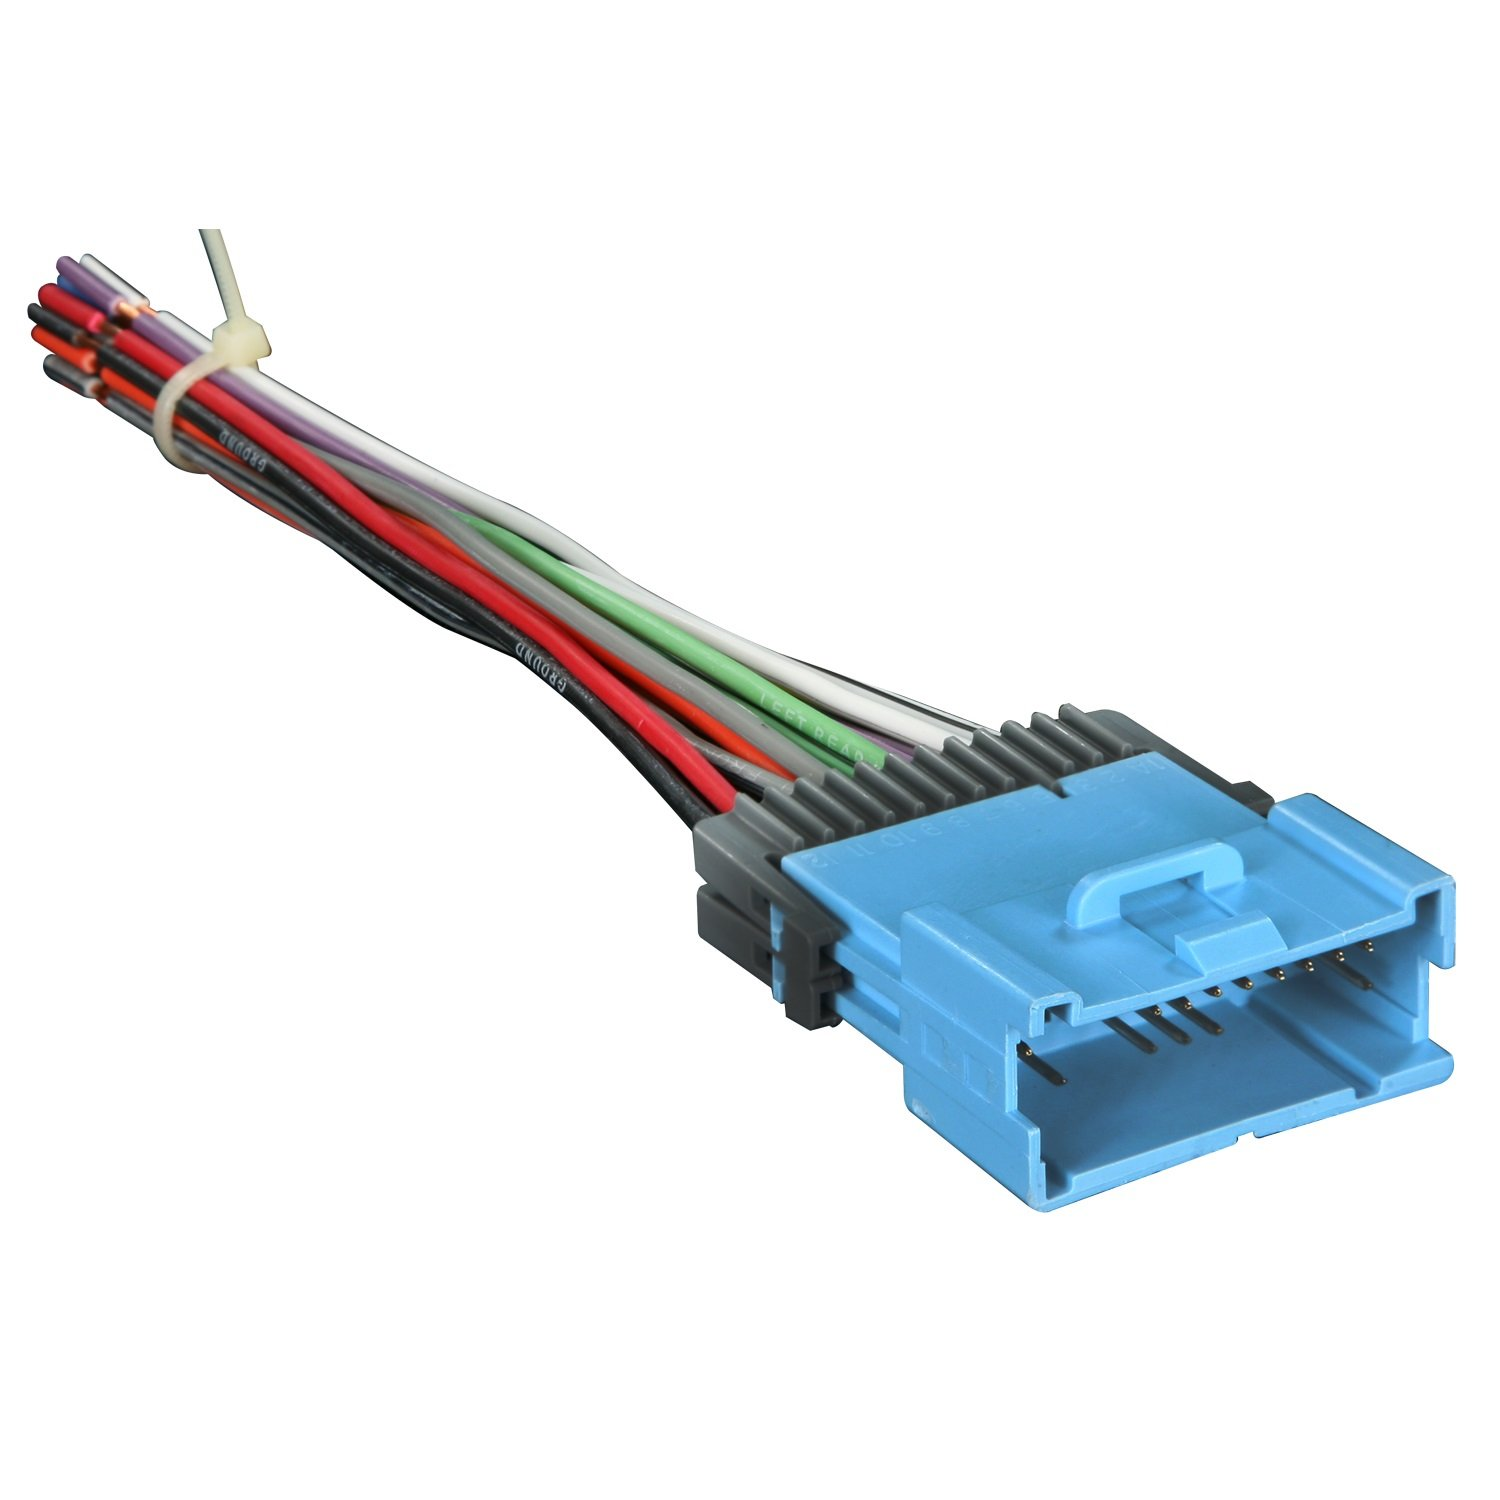 61ruWw 2aJL._SL1500_ amazon com metra 70 2102 radio wiring harness for gm 04 05 car GM Wiring Color Codes at honlapkeszites.co